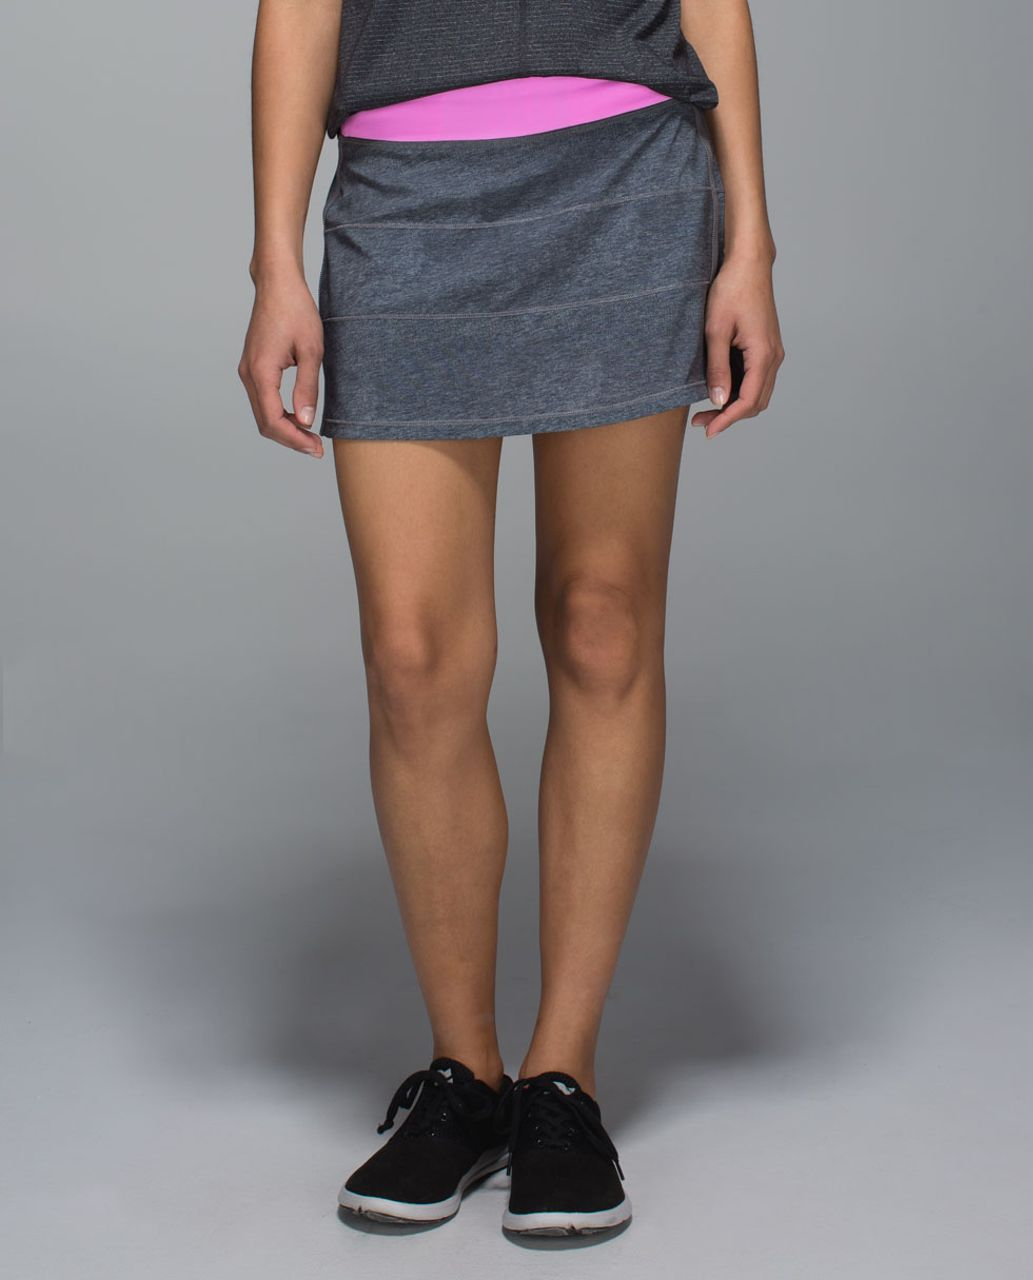 Lululemon Pace Rival Skirt II *4-way Stretch (Tall) - Heathered Texture Printed Greyt Deep Coal / Vintage Pink